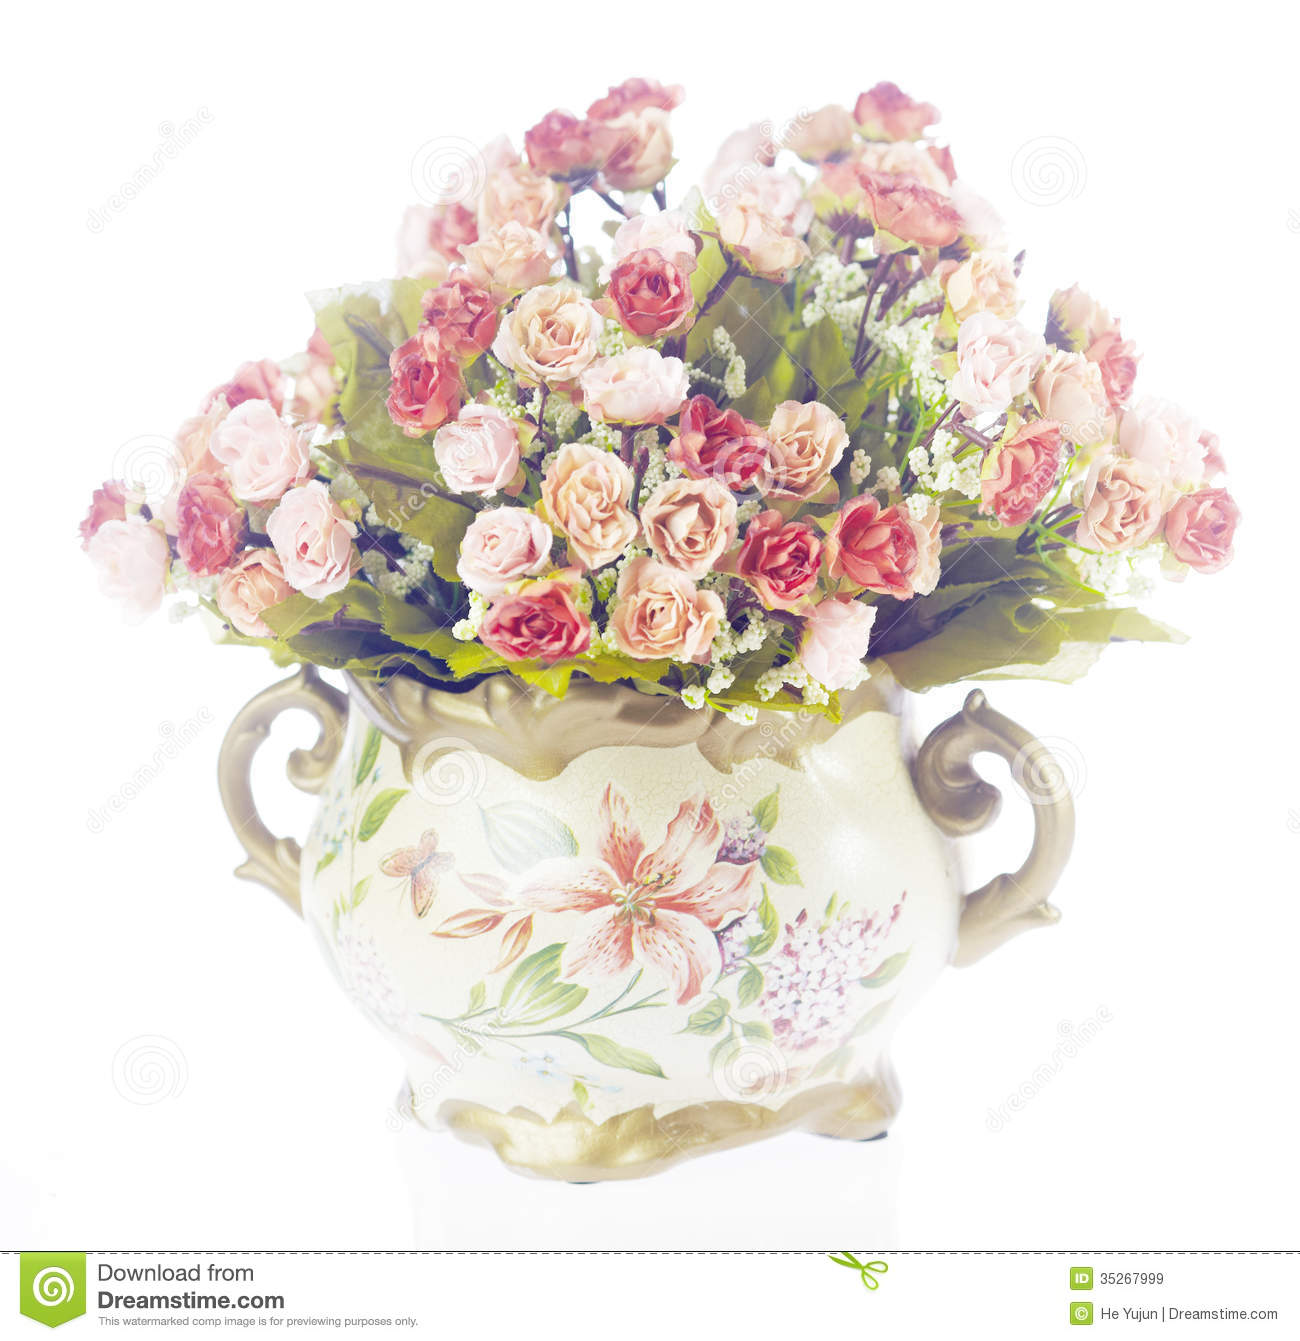 Vases with flowers stock image image of arrangement 35267999 vases with flowers arrangement blossoms reviewsmspy